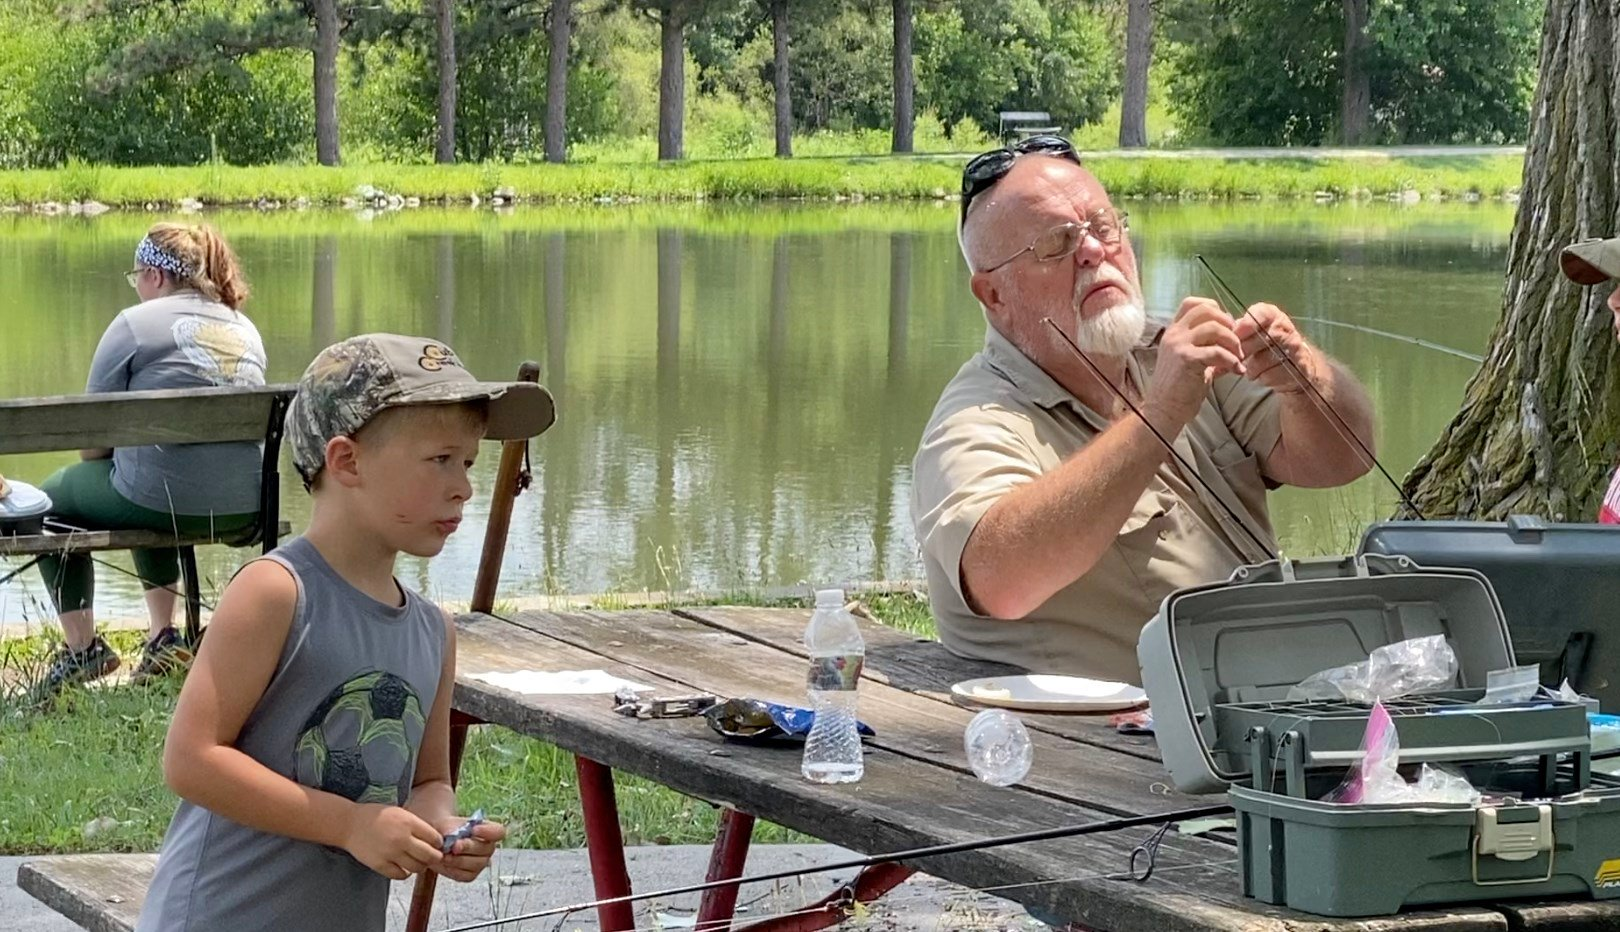 Experience is the biggest catch  at Auburn's Fishing is Fun Clinic